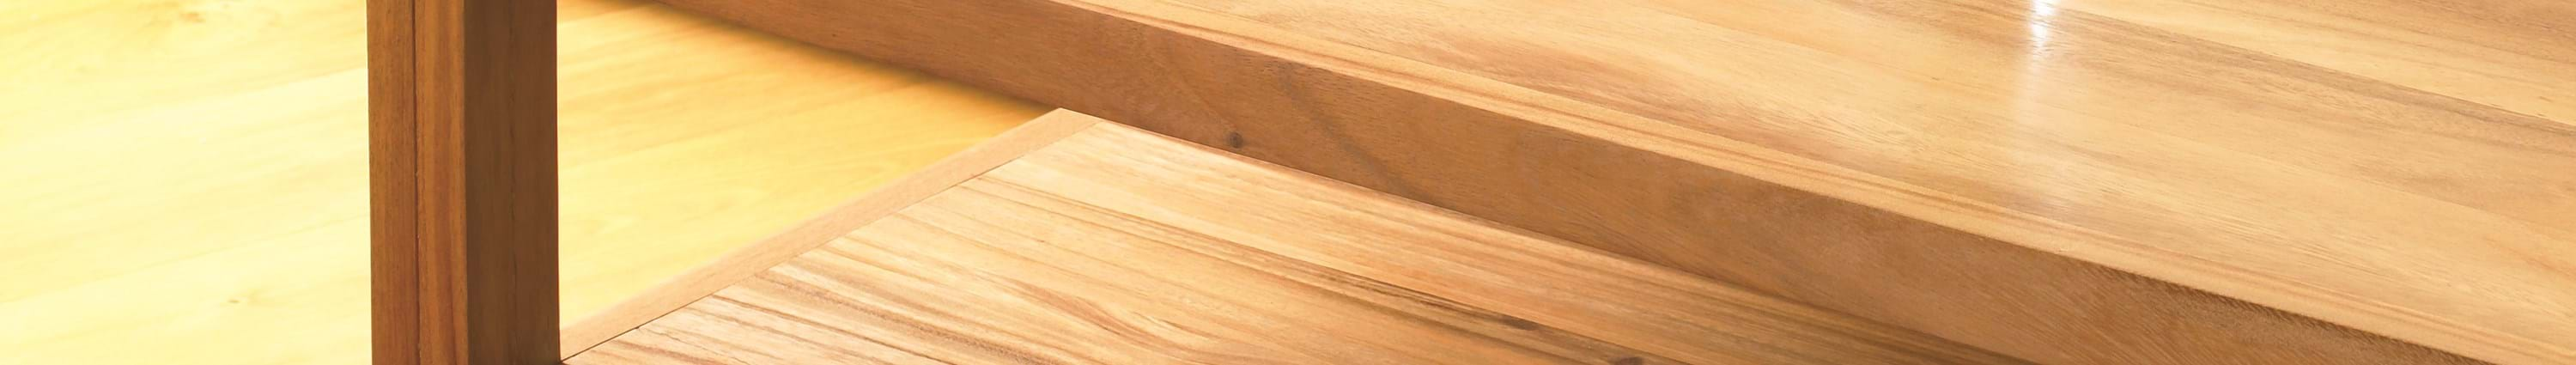 how to wax interior wood.jpg